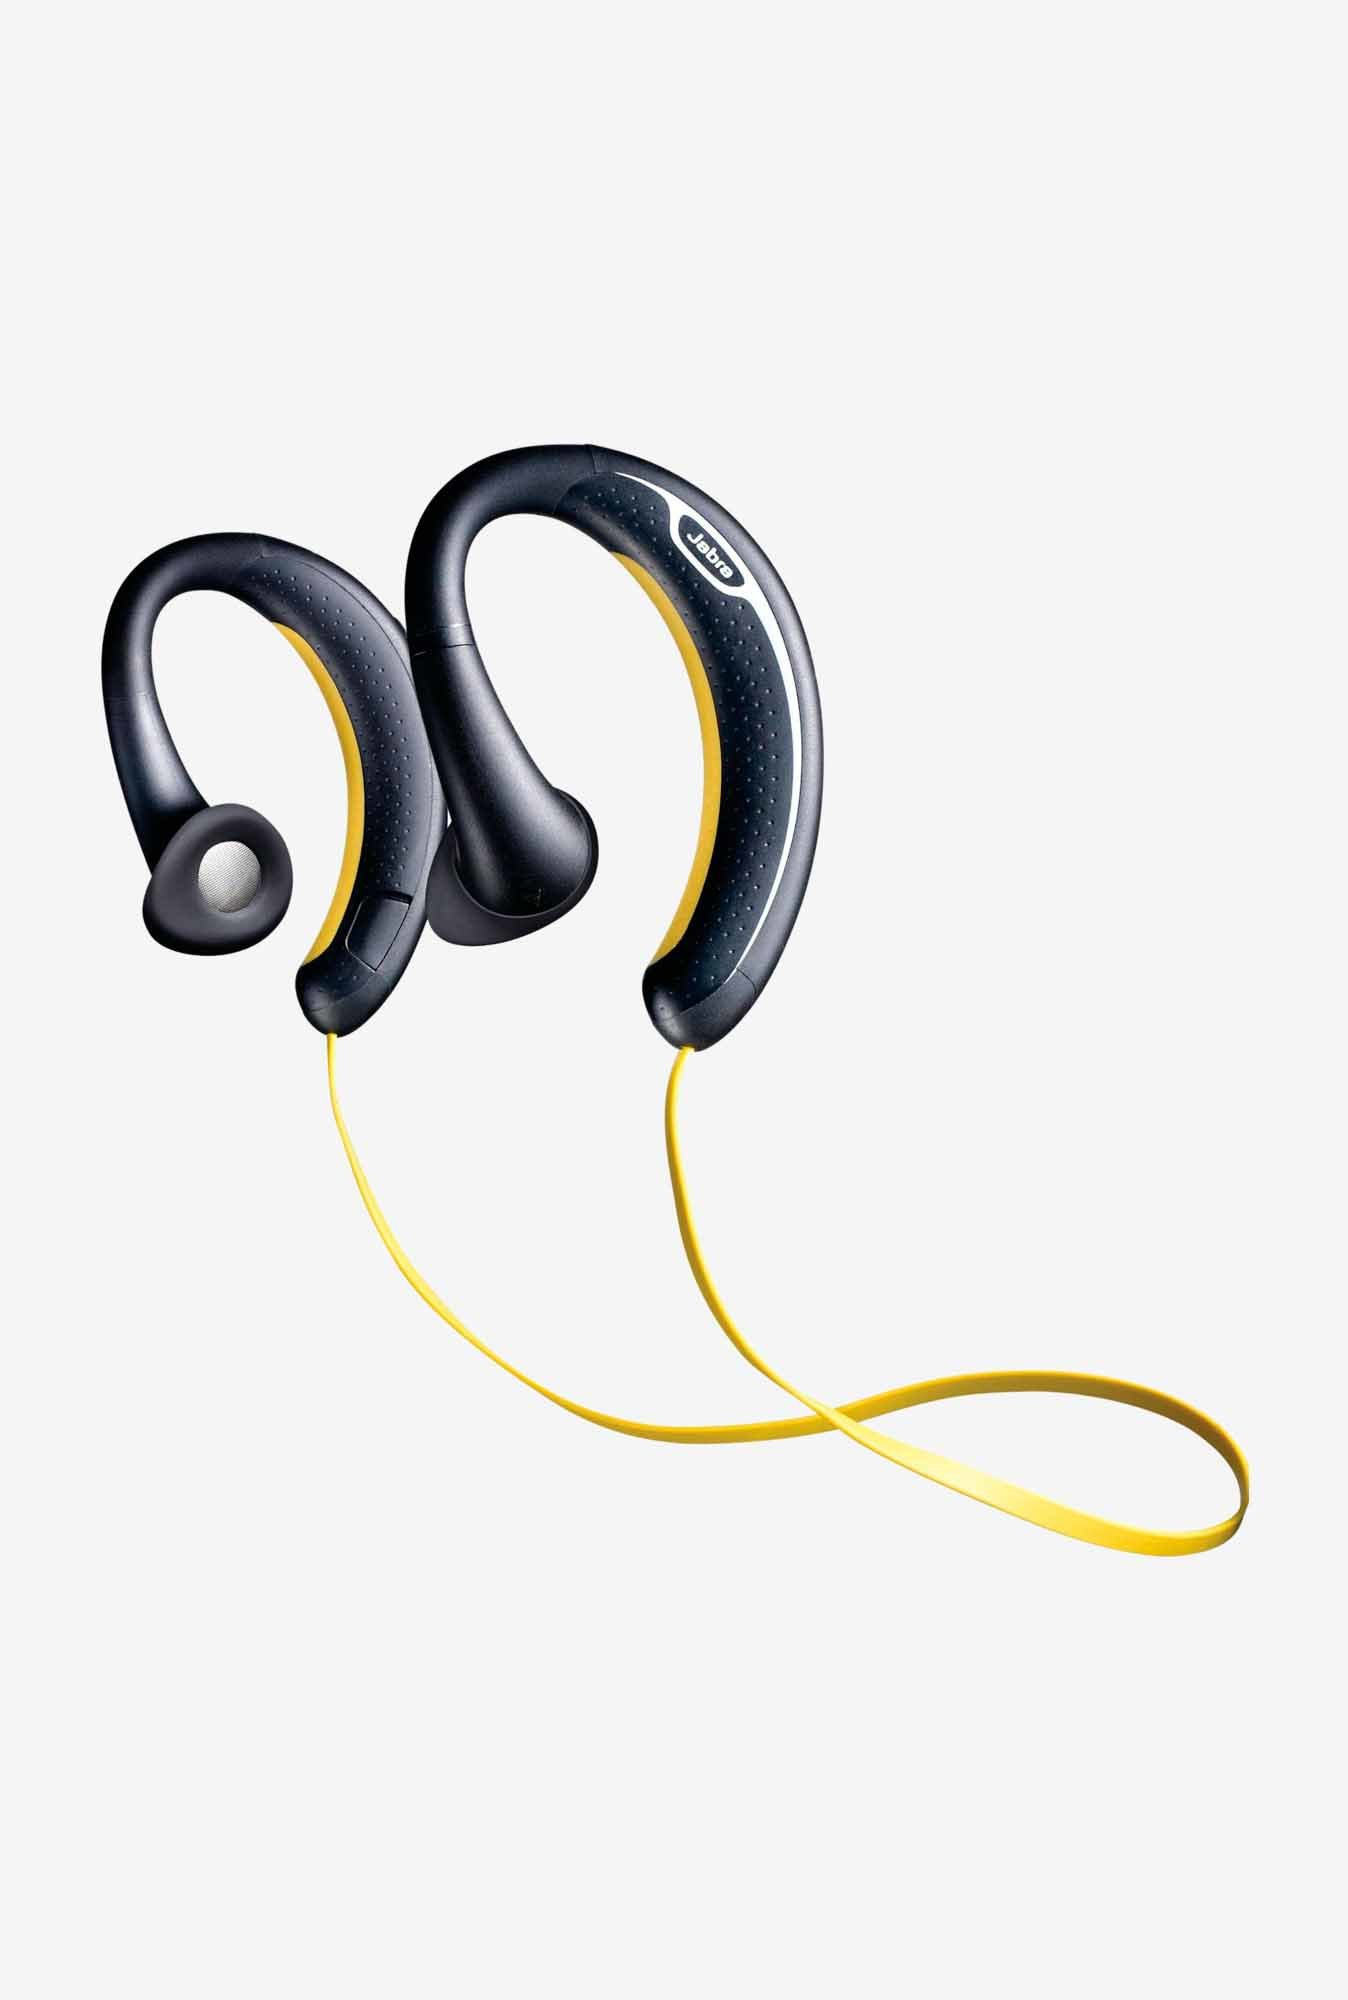 Jabra Sport Plus On the Ear Stereo Headphones Black